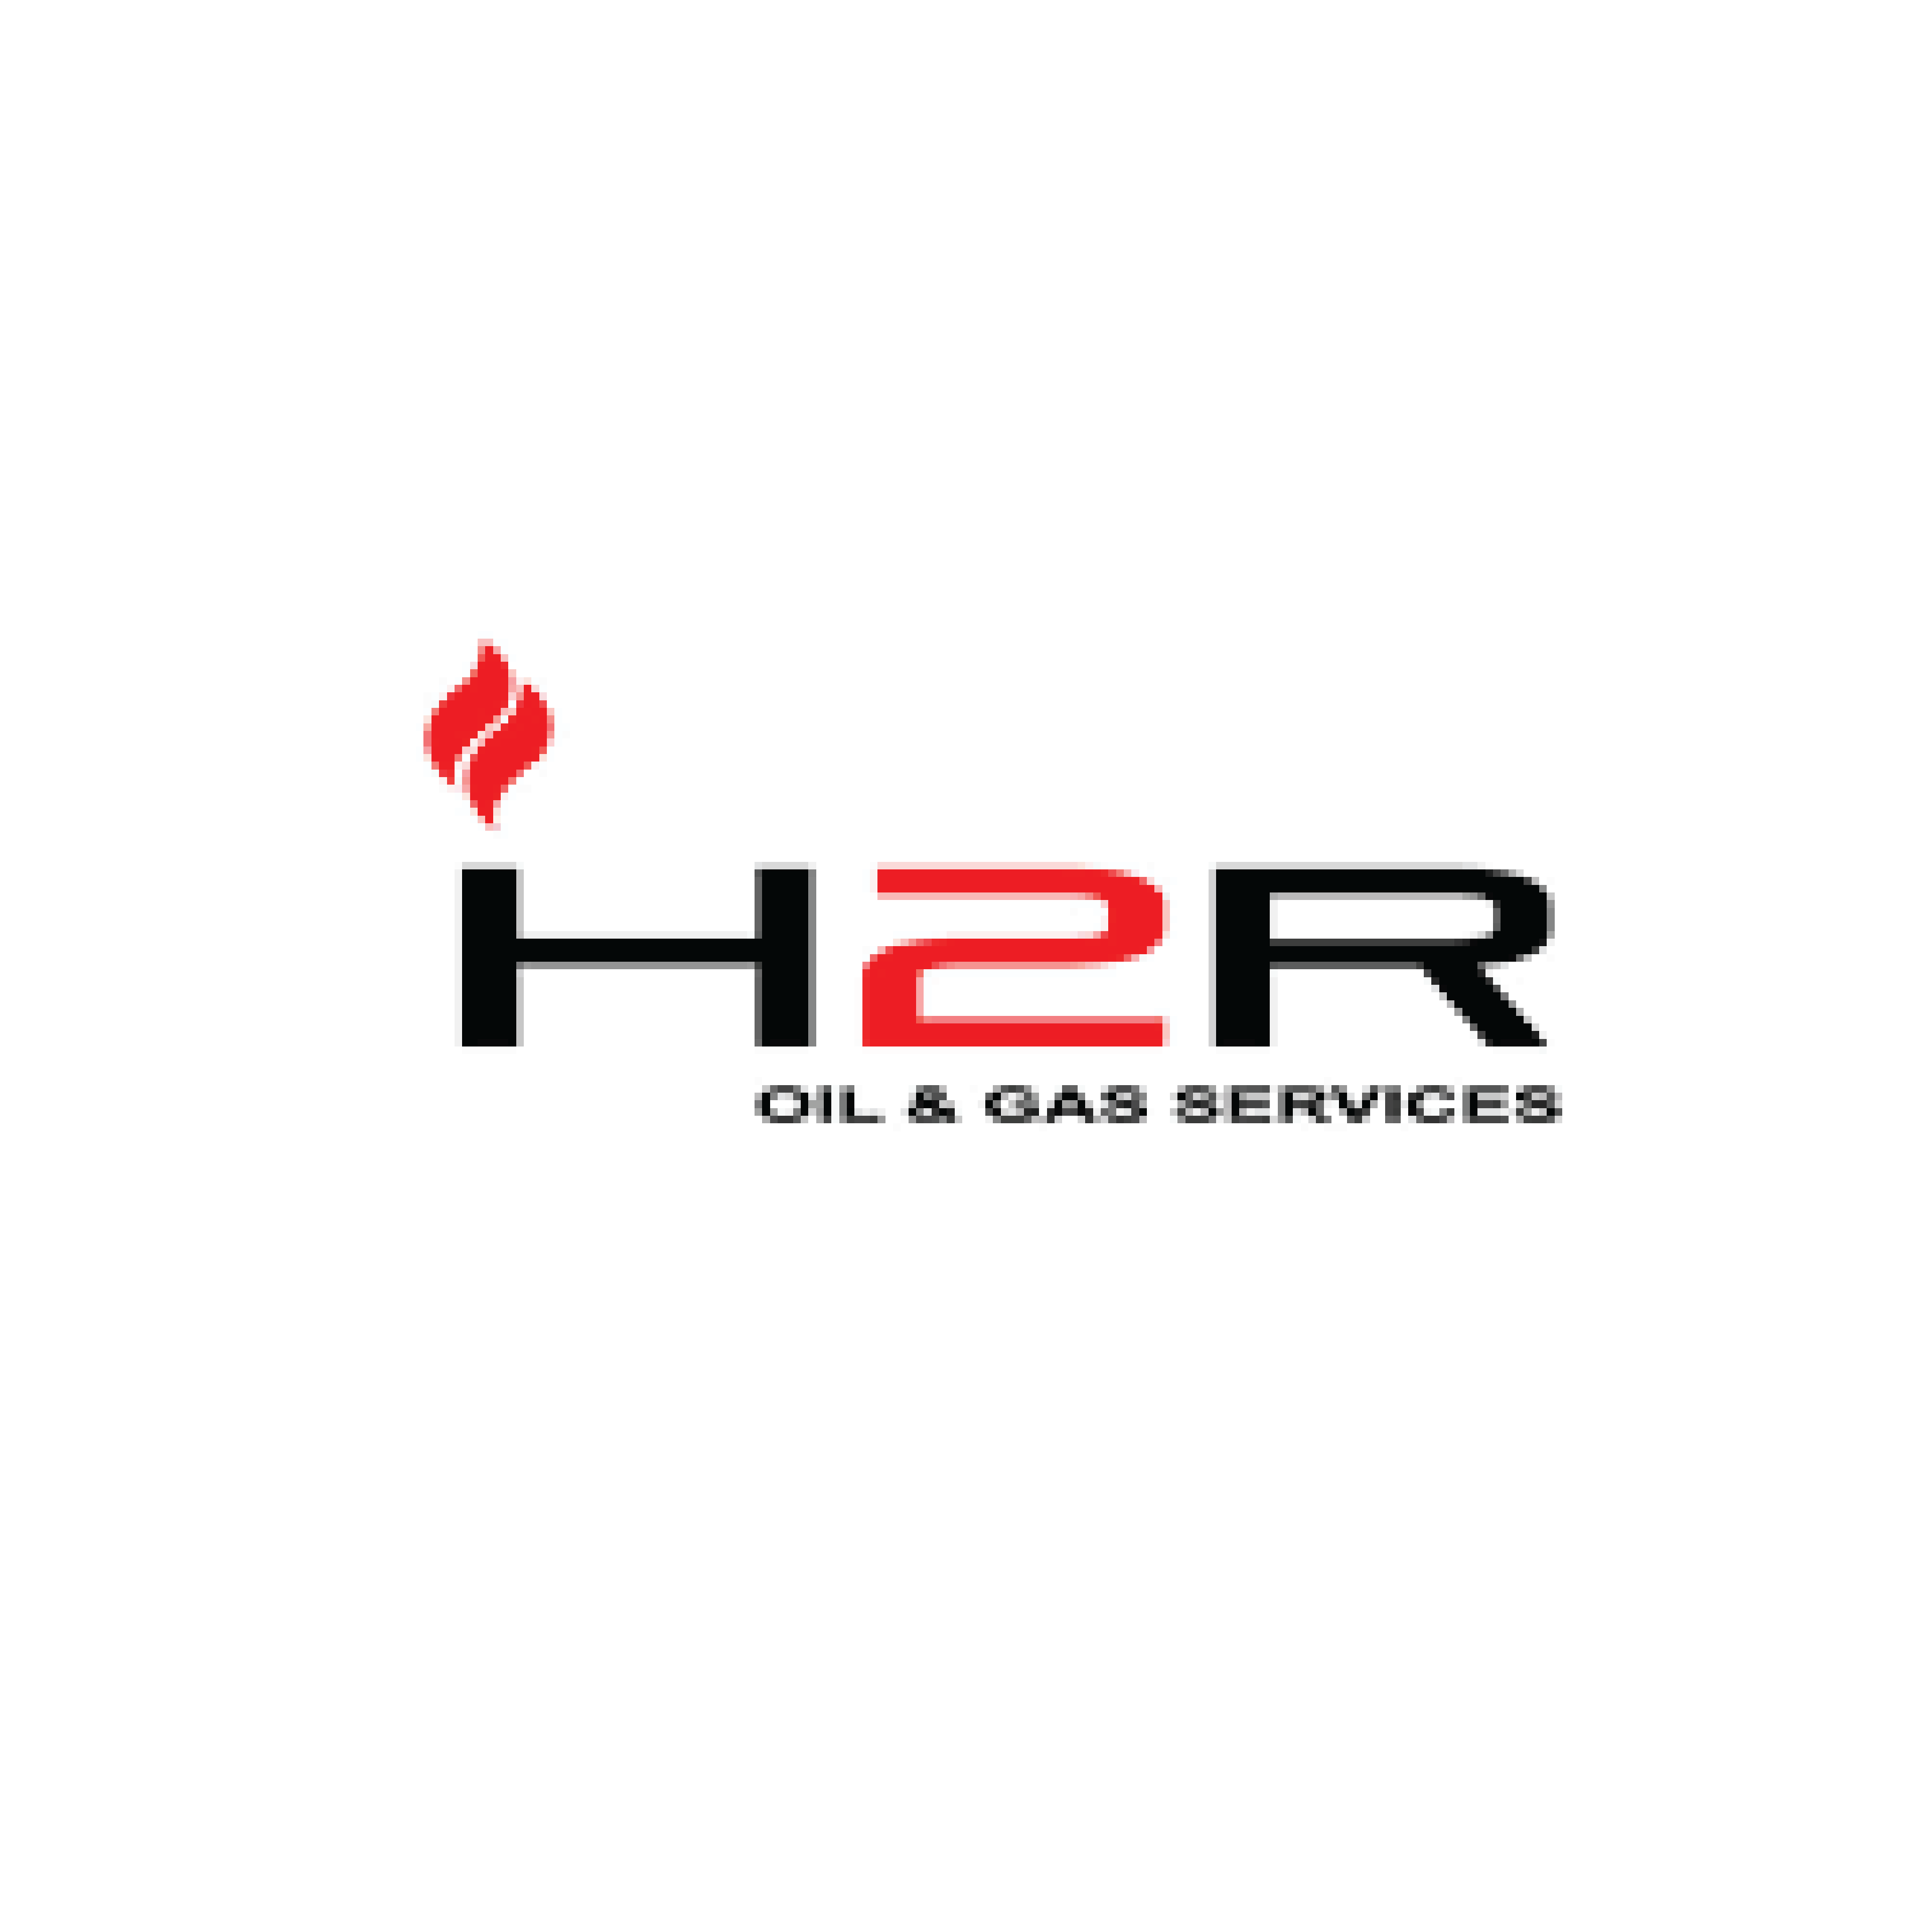 H2R OIL AND GAS SERVICES SDN BHD